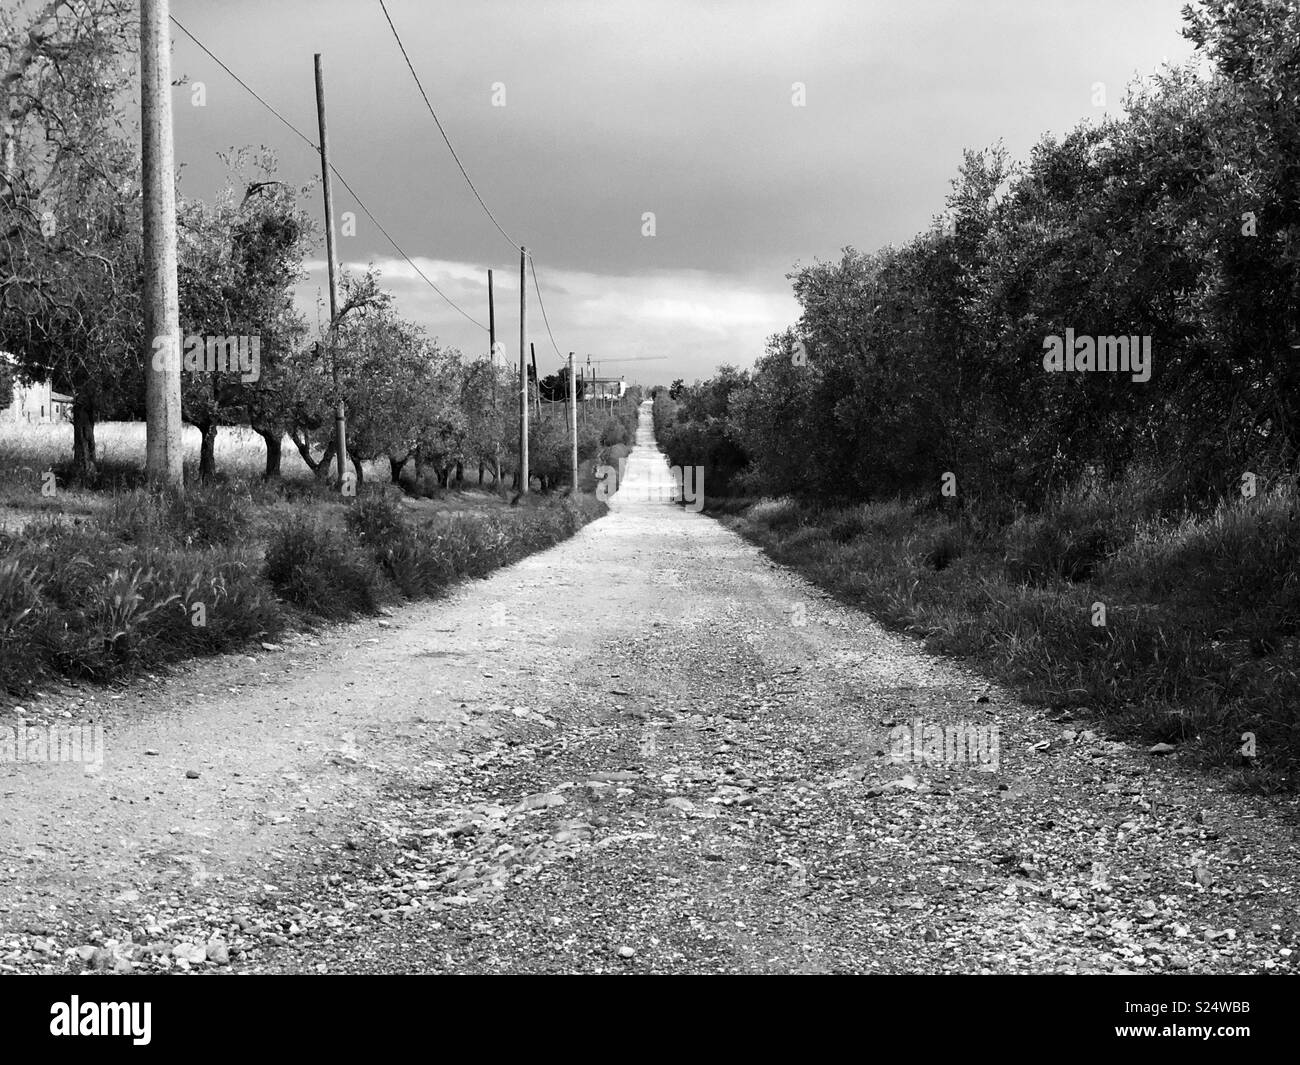 A simile country road. - Stock Image